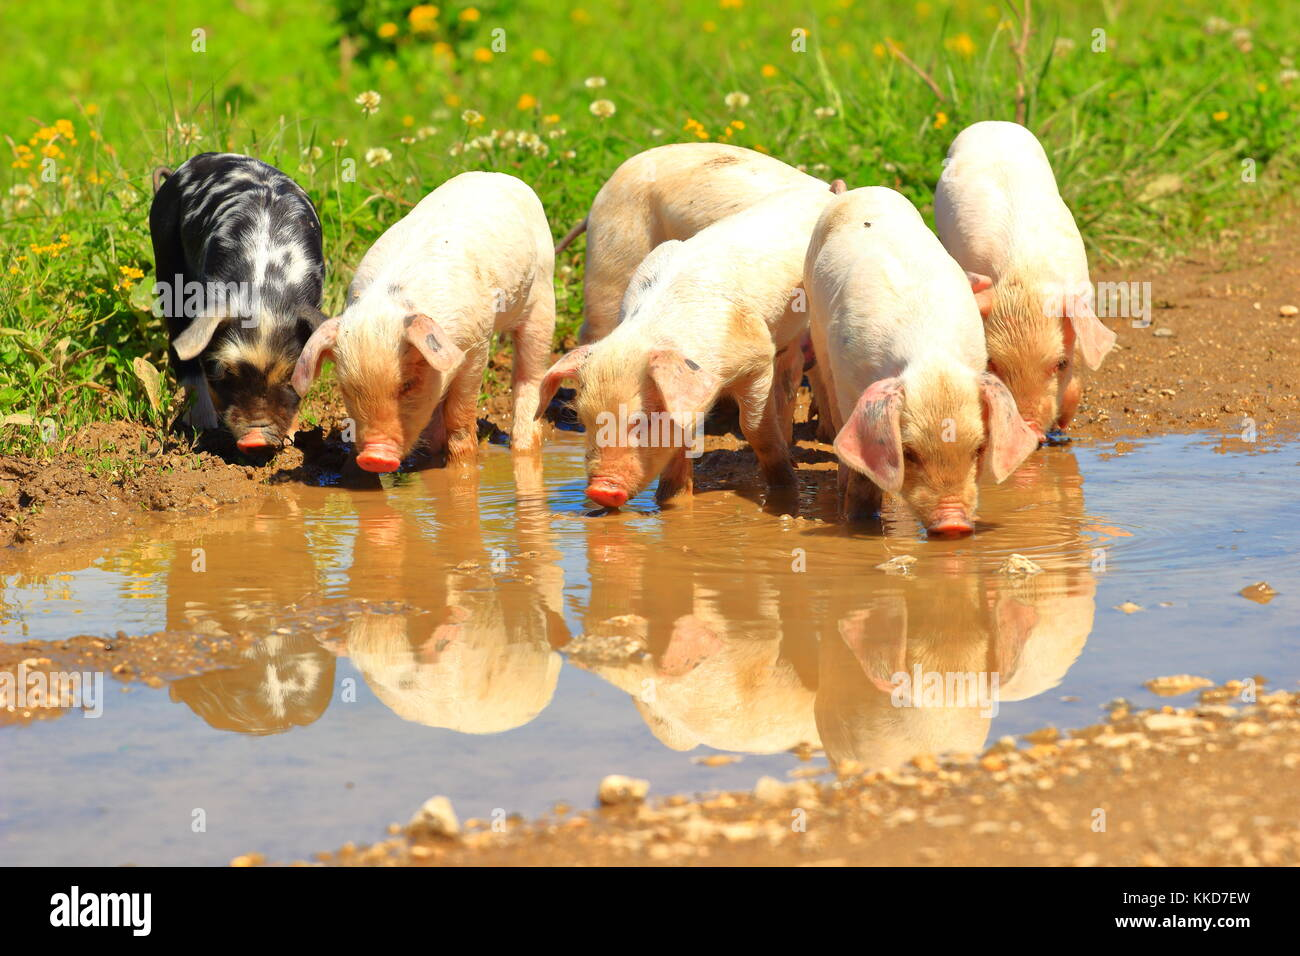 Cute little piglets on farm - Stock Image